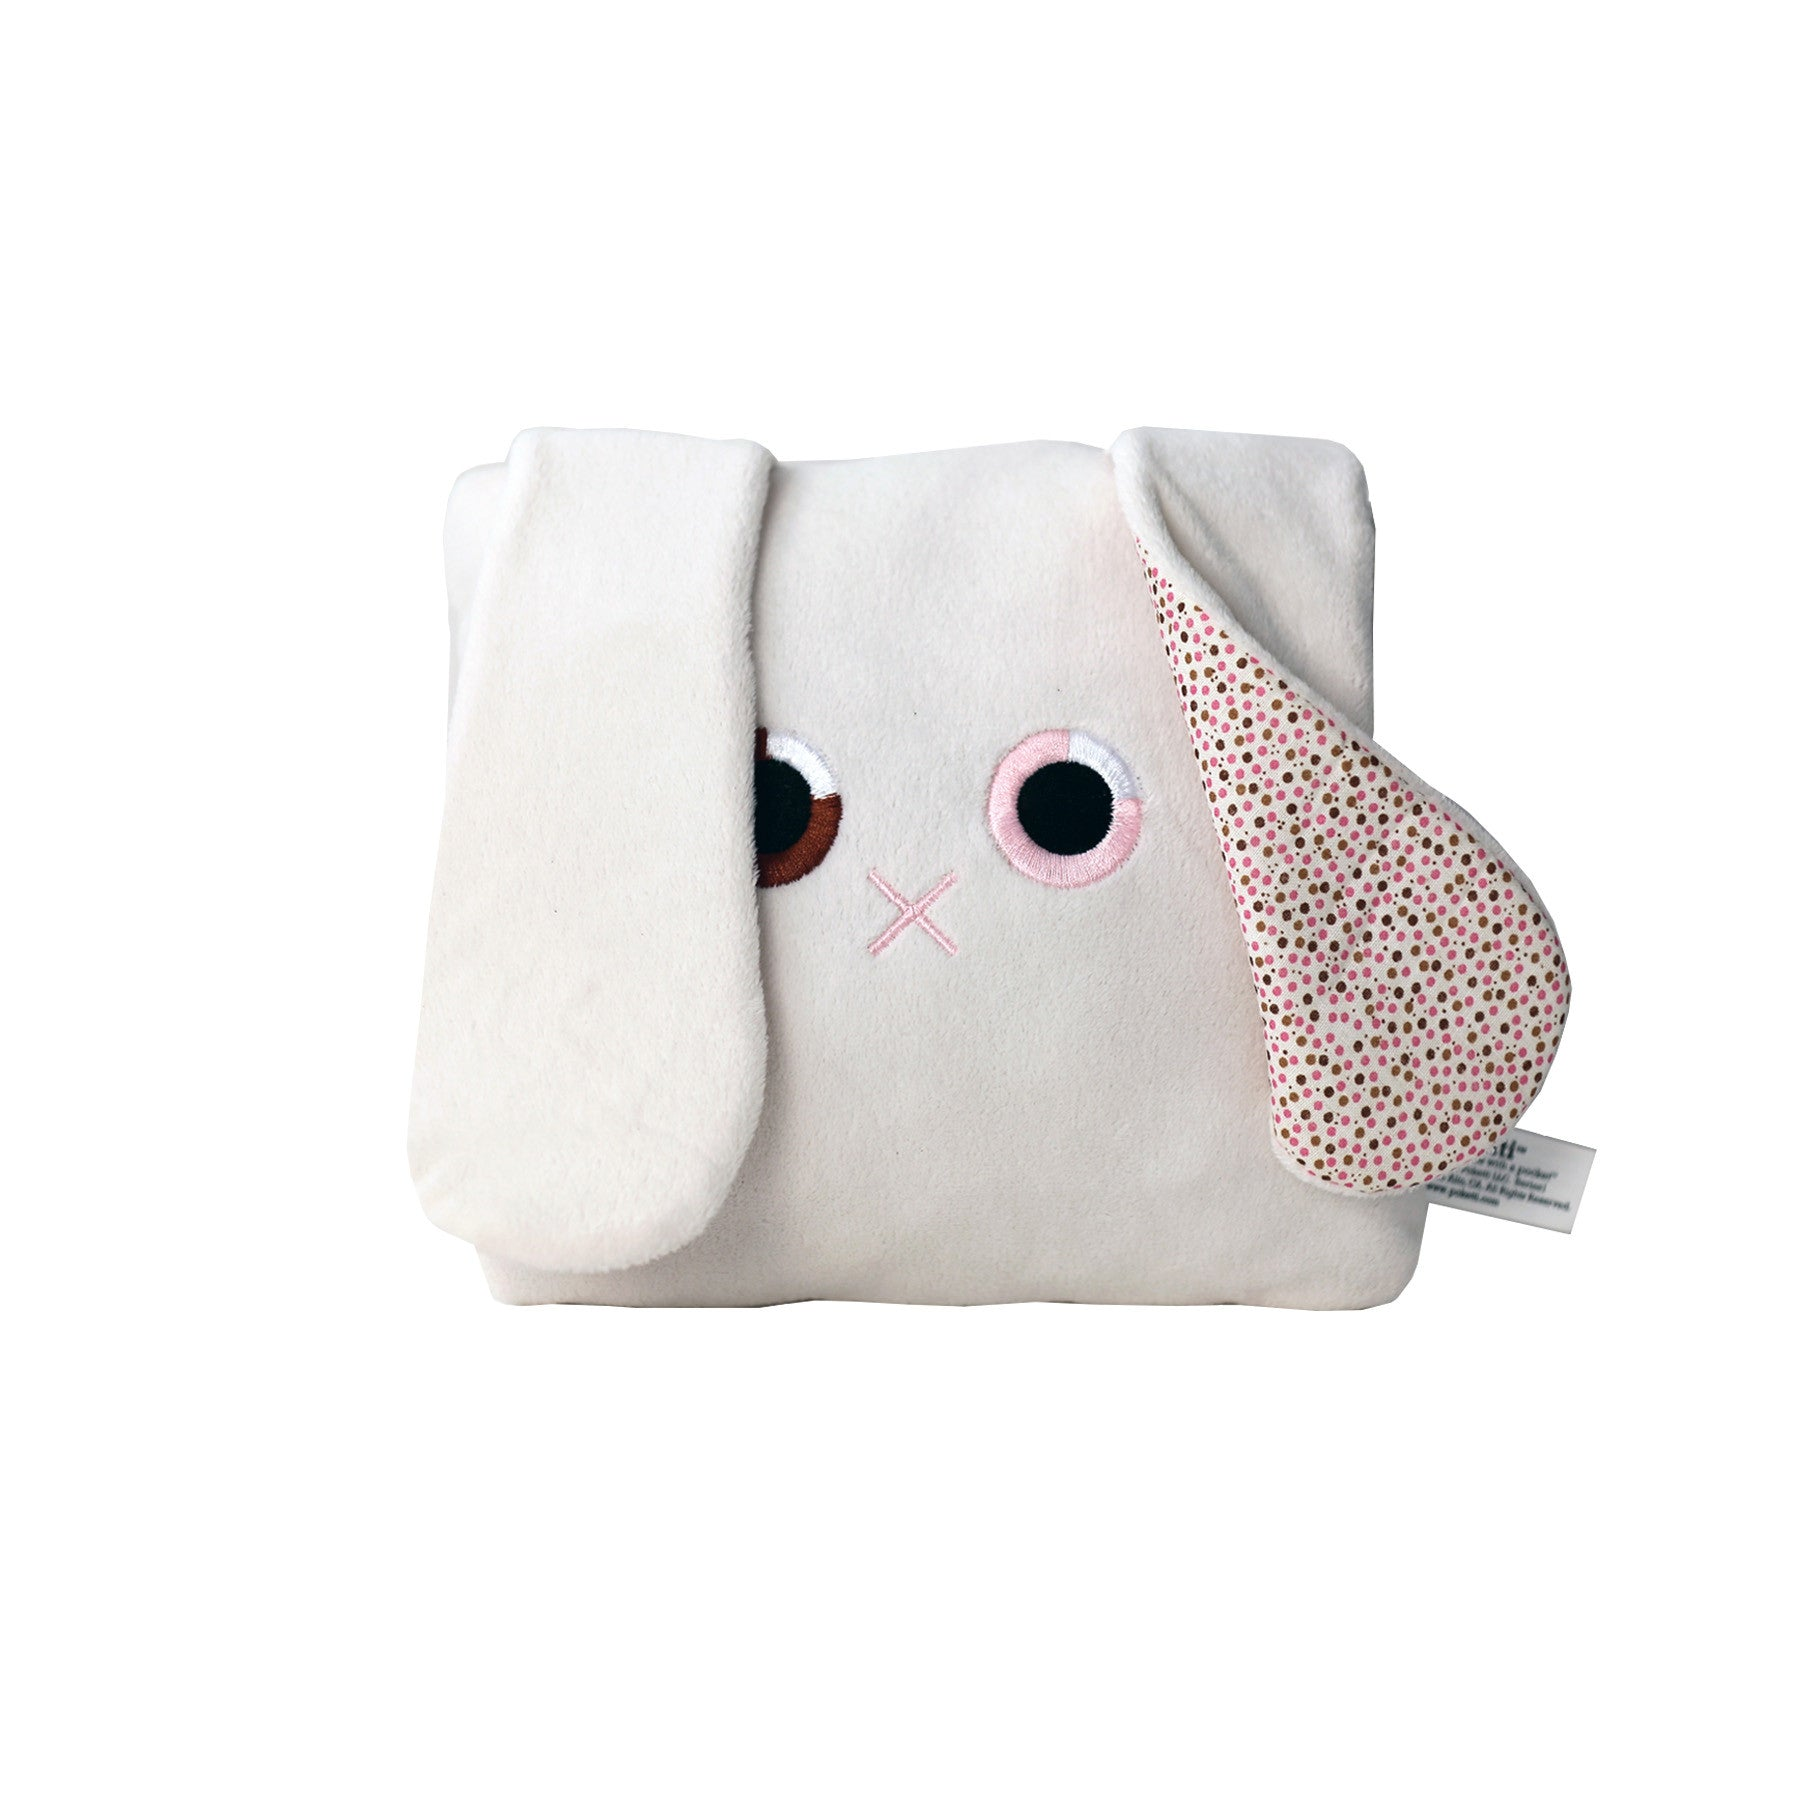 Poketti Bunny Rabbit Plush Pillow with a Pocket - Front